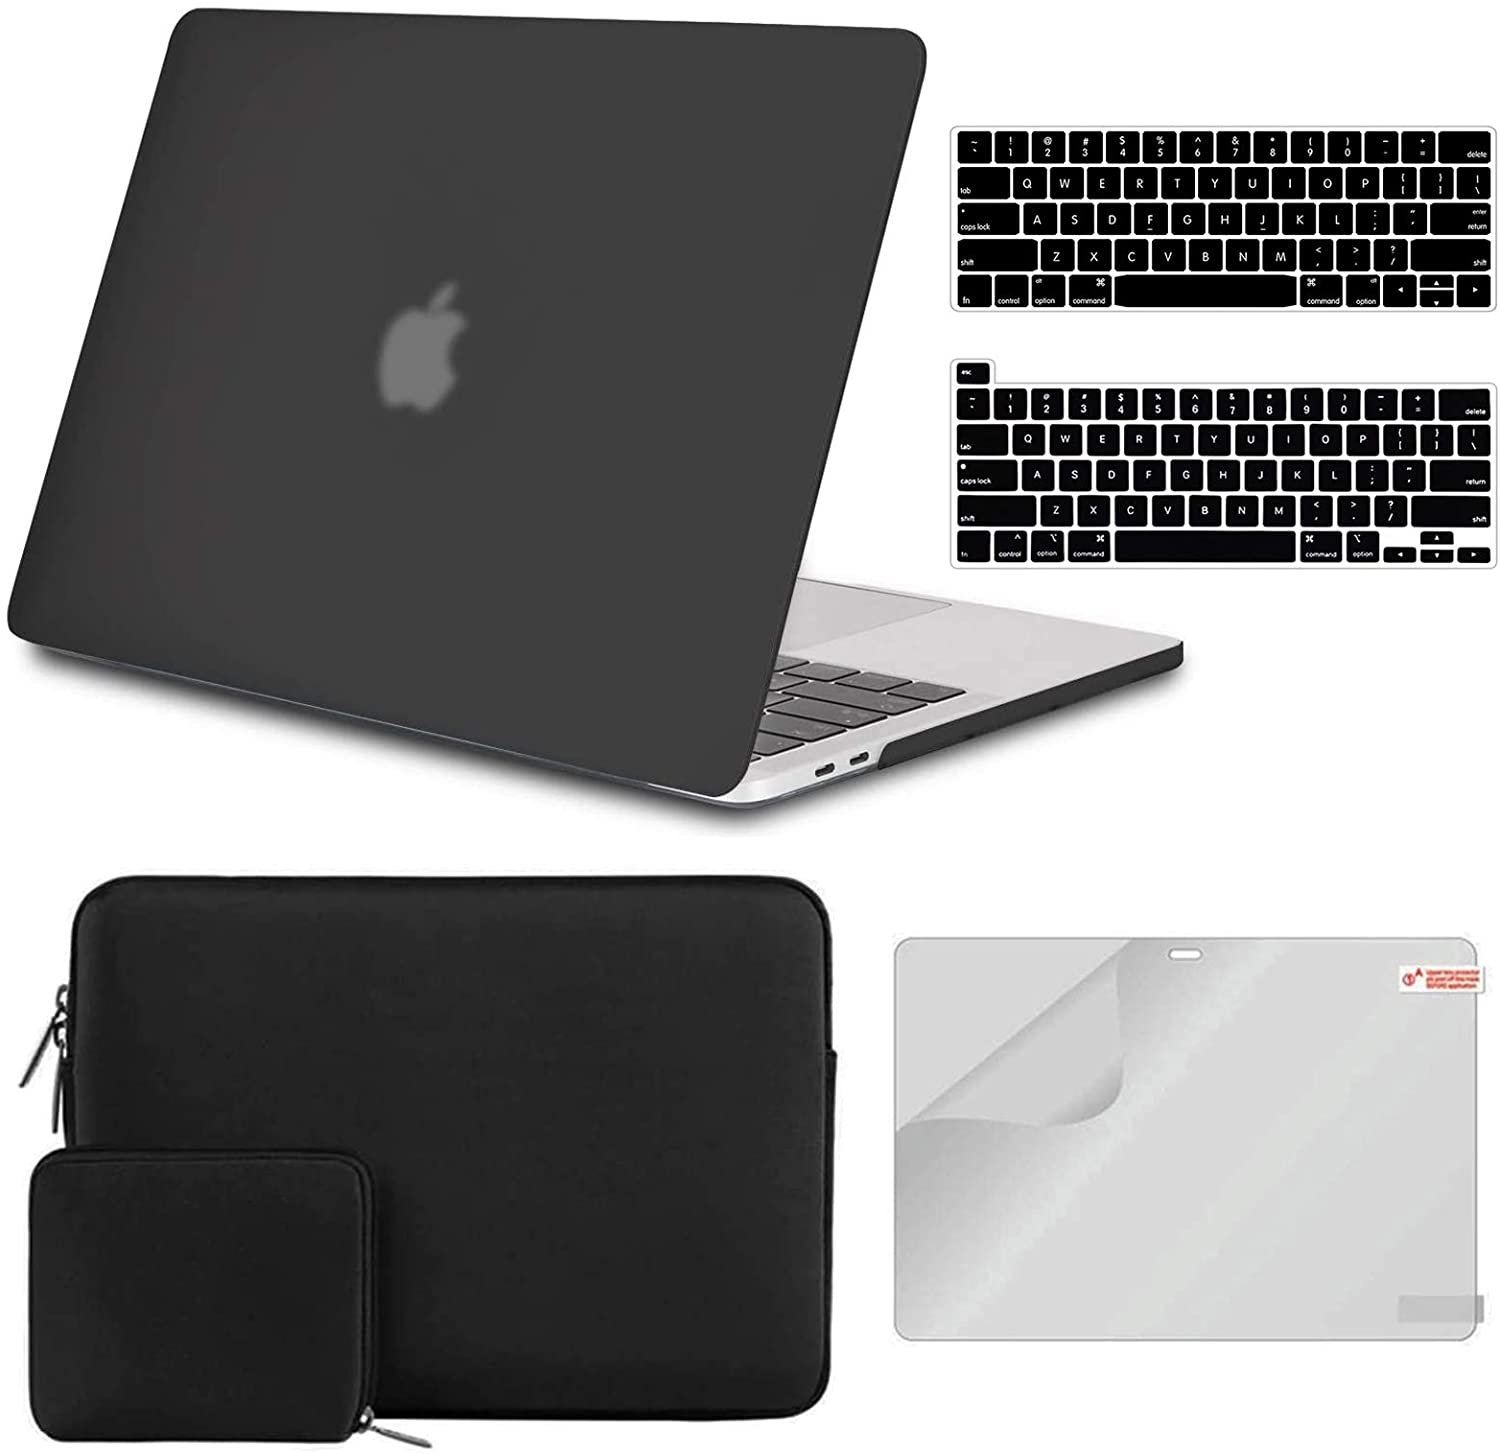 iCasso Case Compatible with MacBook Pro 13 inch Case A2338 M1/A2289/A2251/A2159/A1989/A1706/A1708,Hard Shell Case,Sleeve,Screen Protector,Keyboard Cover for MacBook Pro 13'' with Small Bag - Black